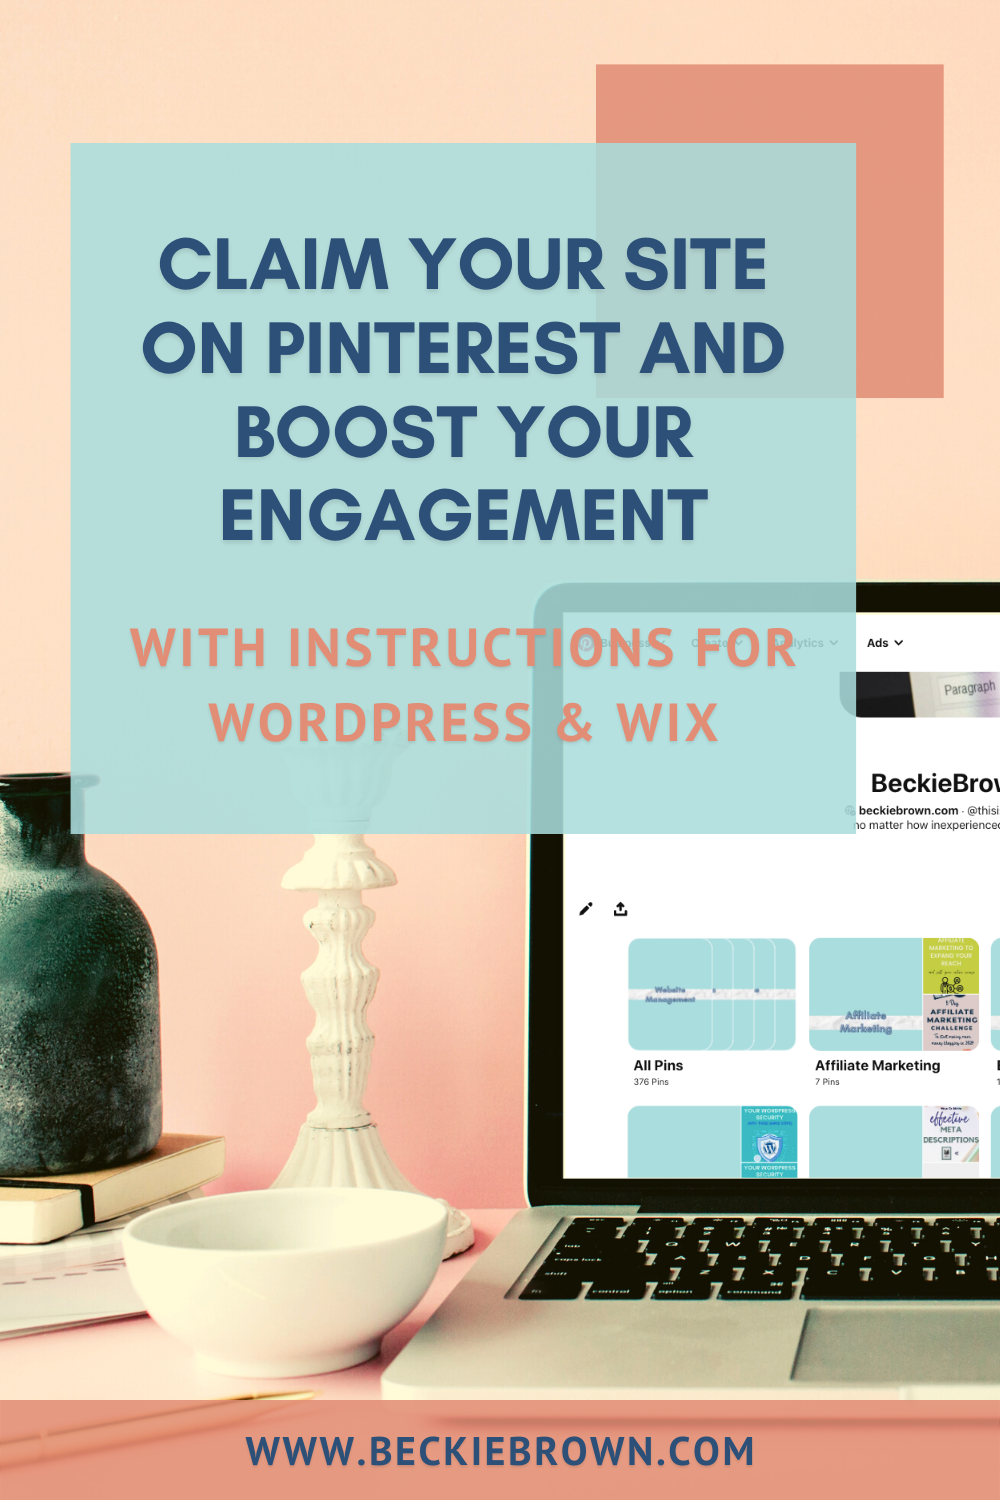 Have you claimed your site on Pinterest yet? Do you even know what I'm talking about? Let me explain. Business users on Pinterest have the option to 'claim' their website and external accounts for Instagram, Etsy, and YouTube. Learn about the benefits of claiming your website and see how to do it!